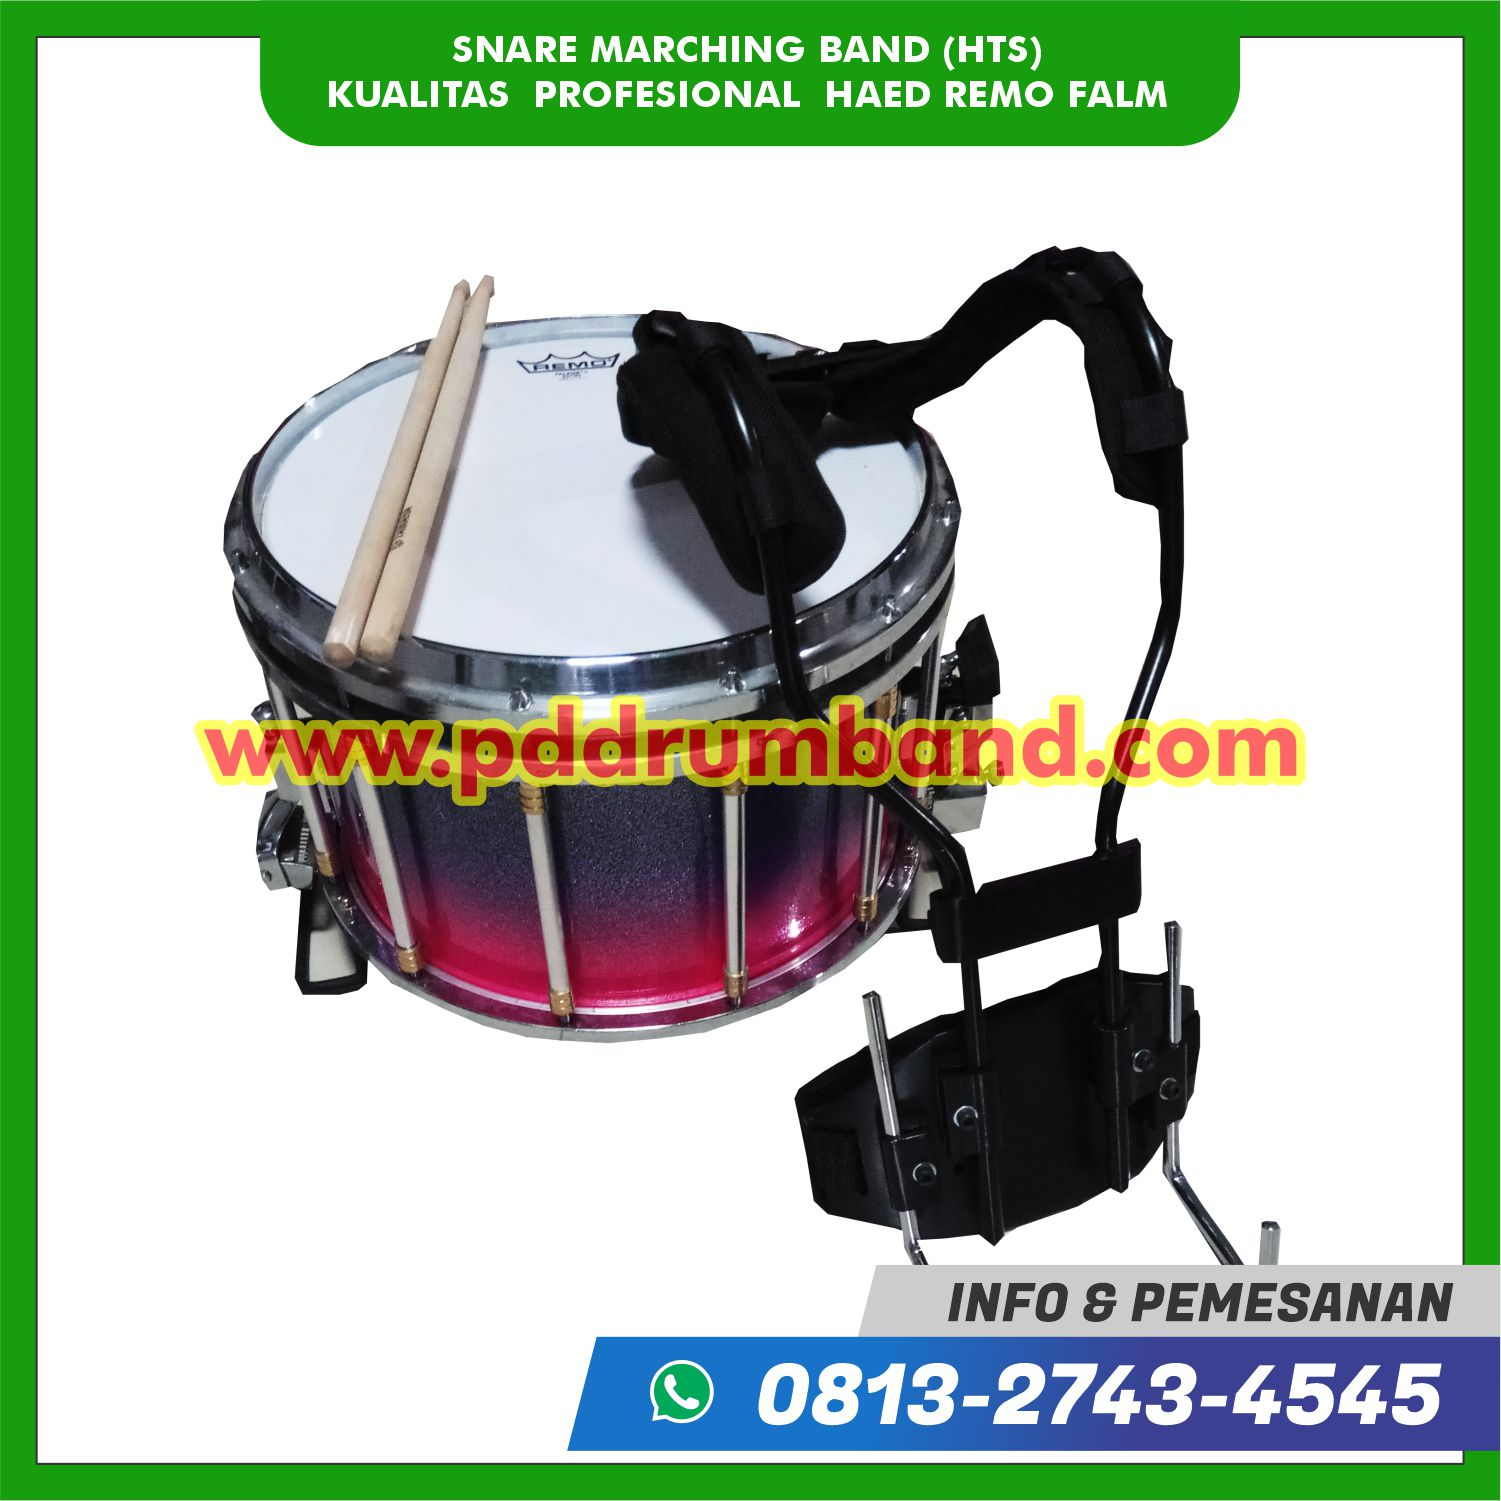 Snare Hts Profesional